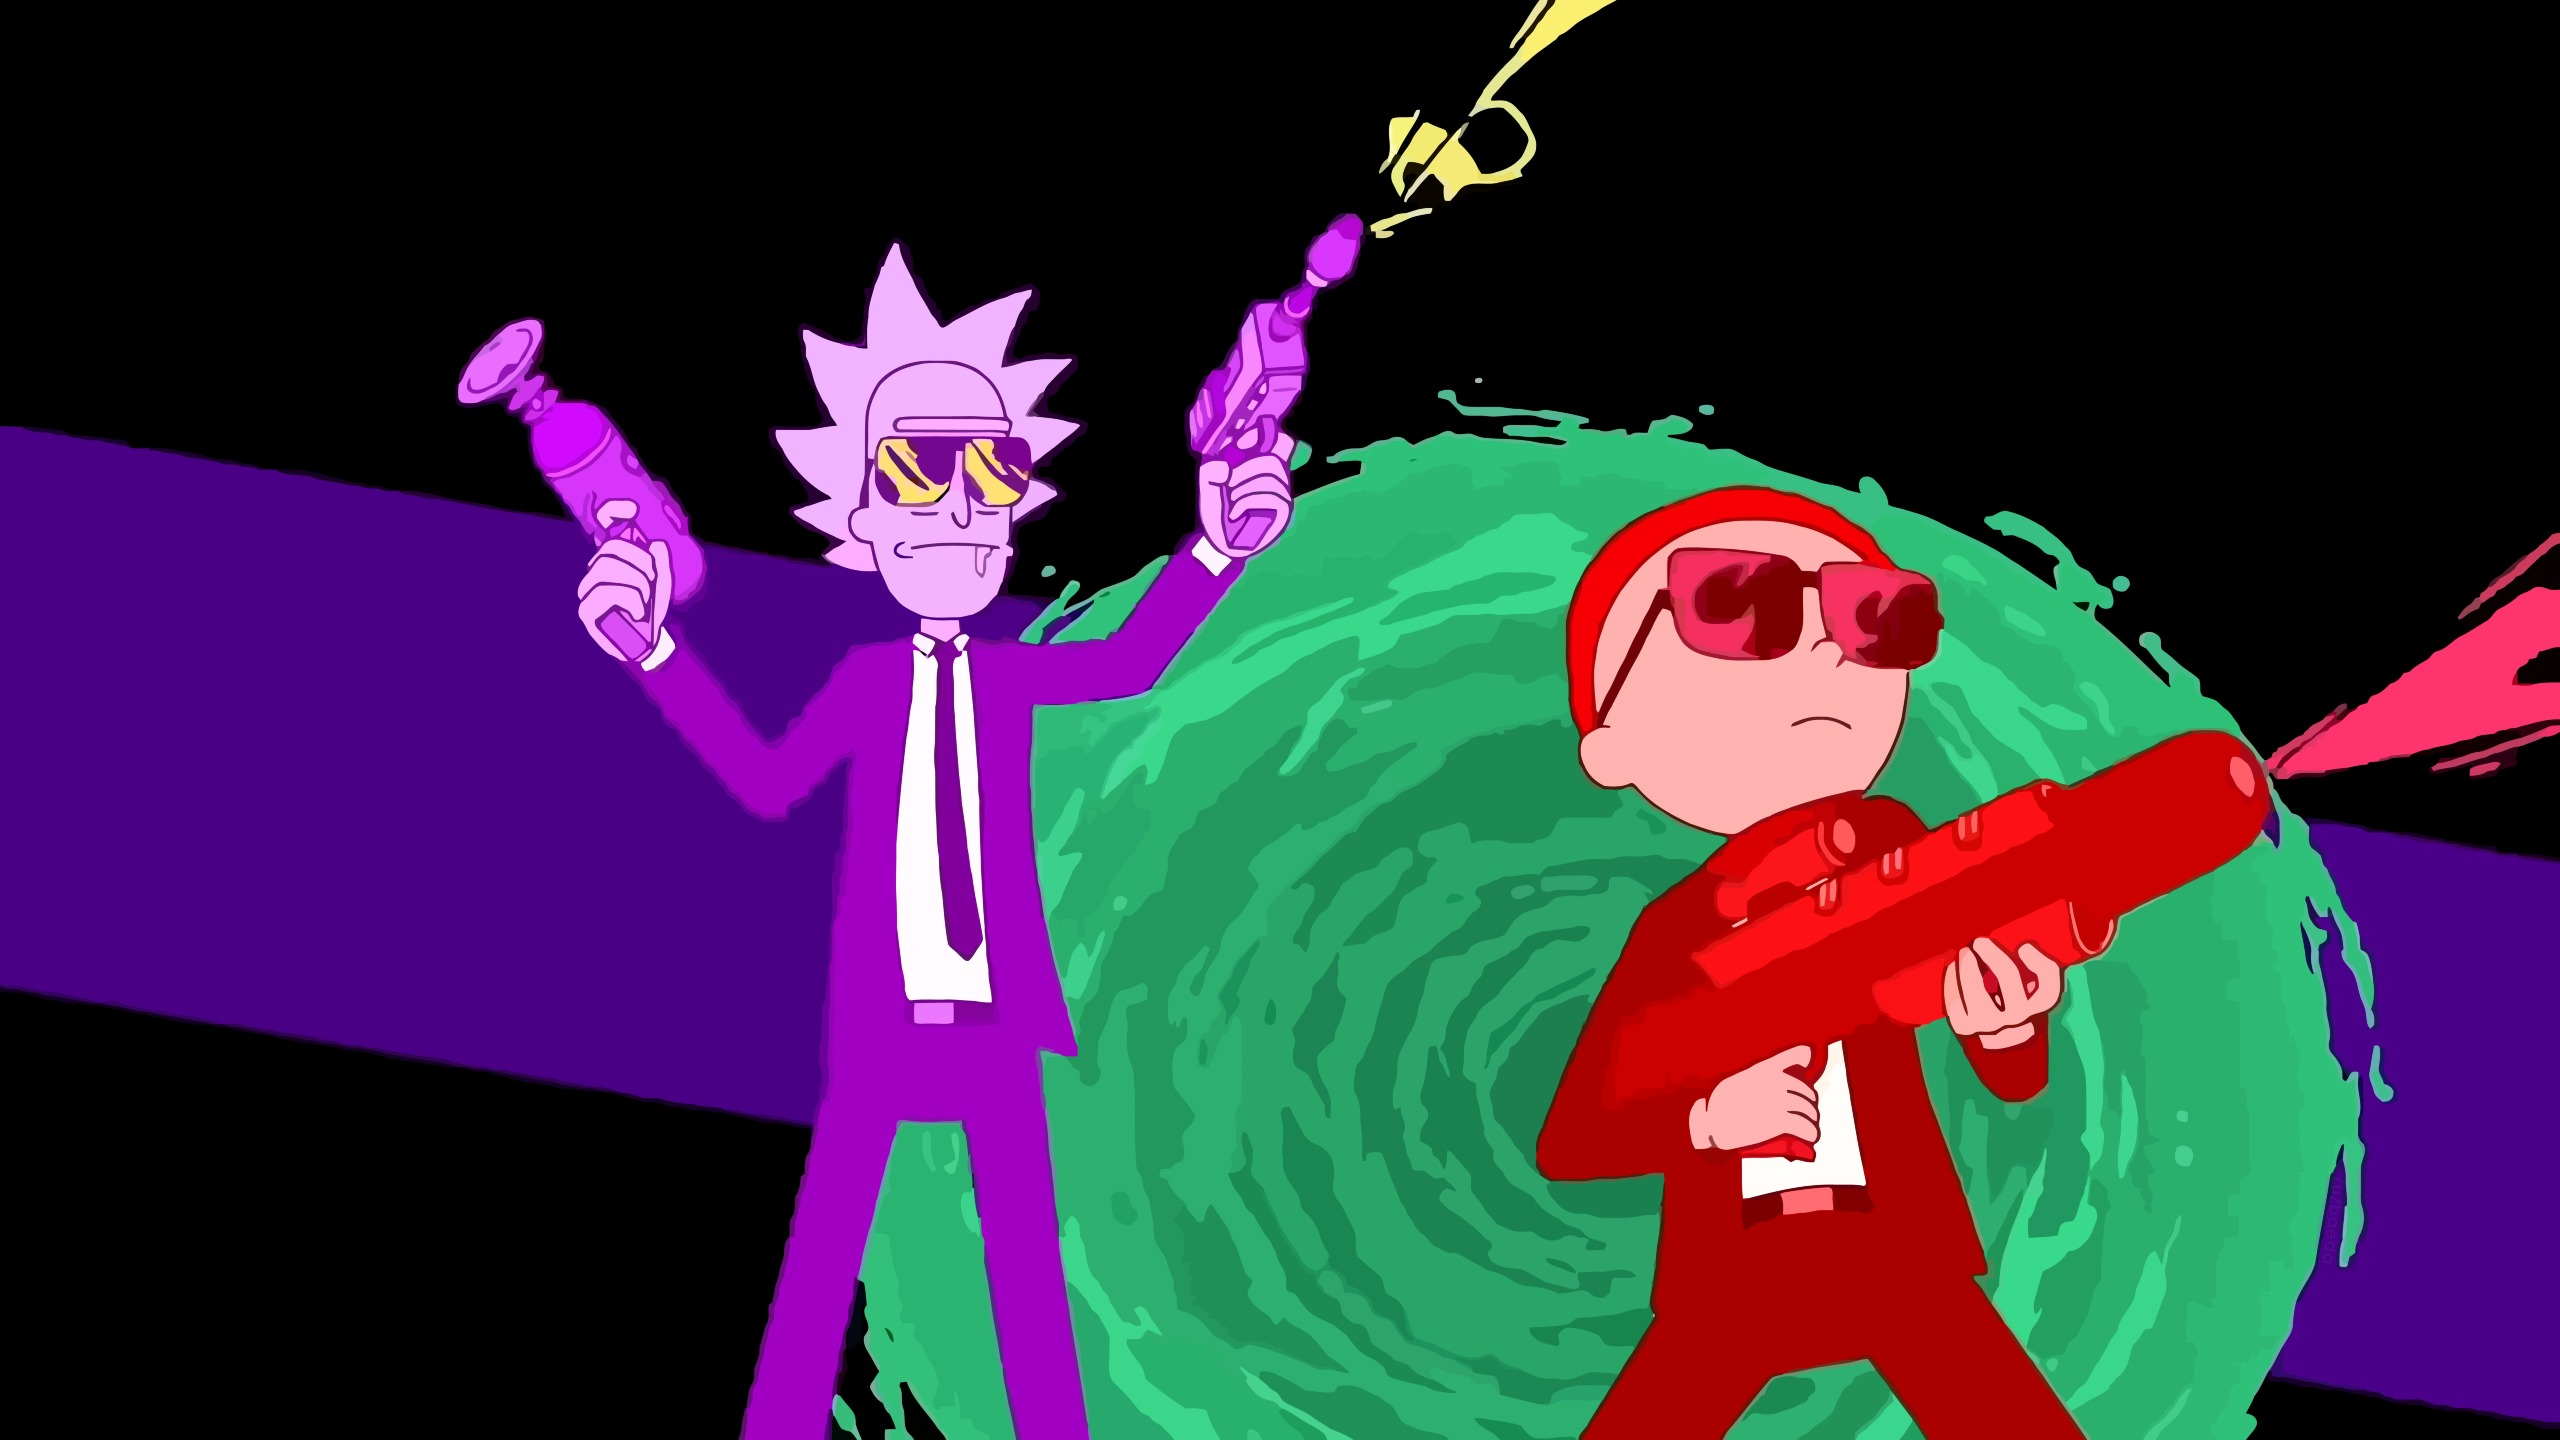 2560x1440 Rick And Morty Run The Jewels Art 1440p Resolution